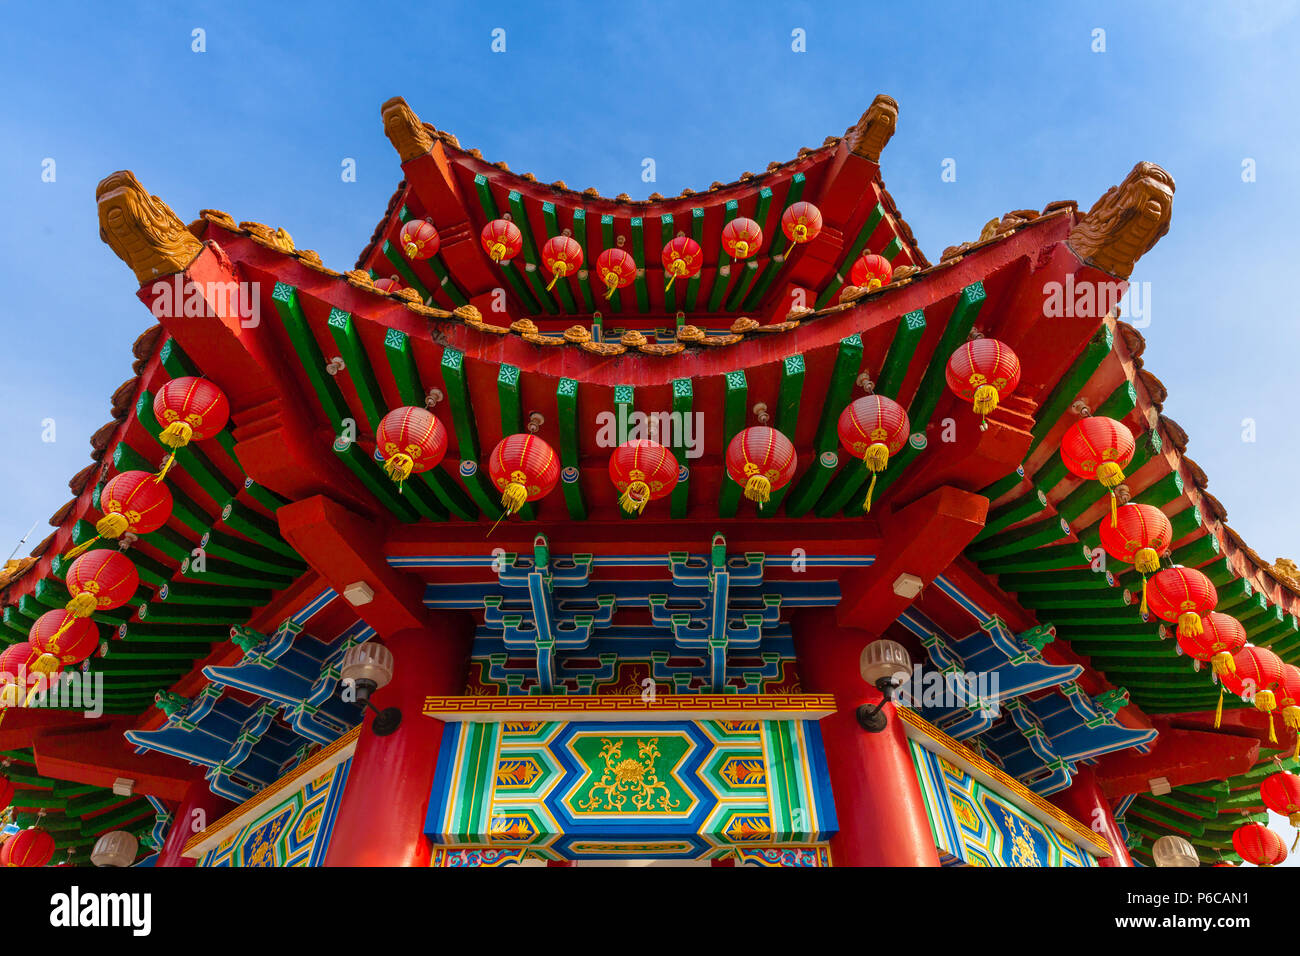 The roof of the Thean Hou Temple decorated with red Chinese lanterns, Kuala Lumpur, Malaysia - Stock Image